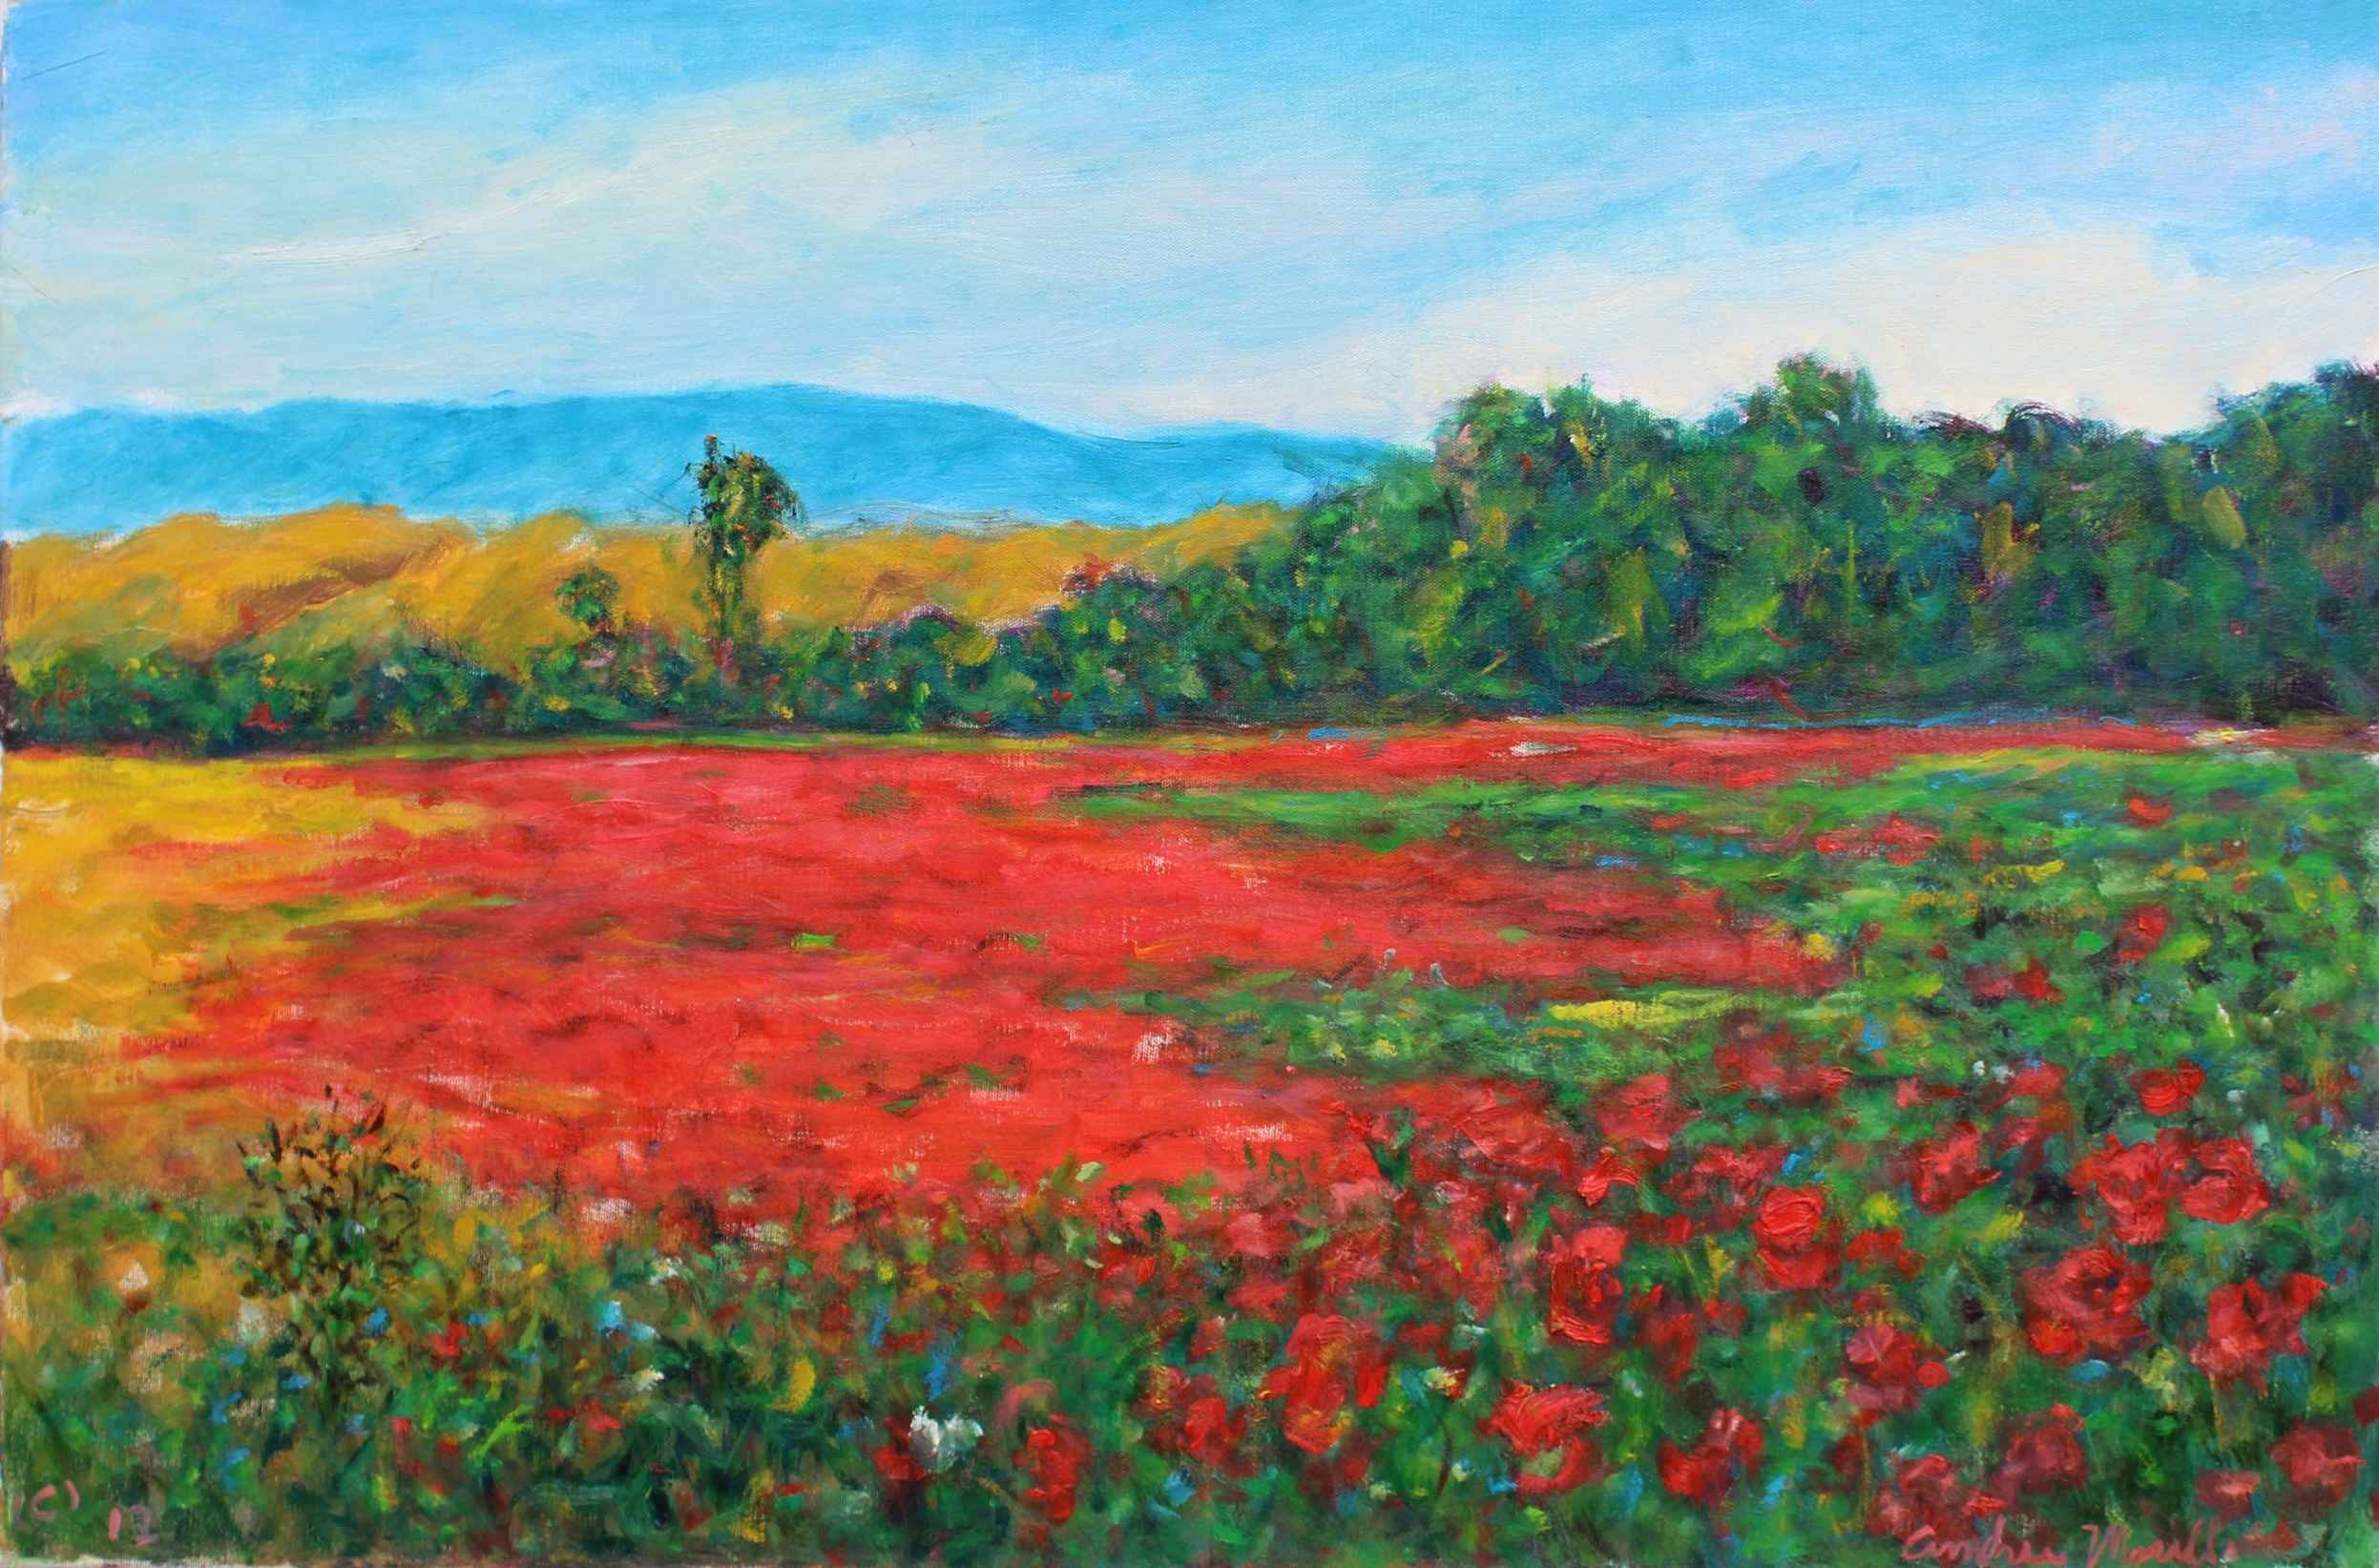 This is Field with Hidden Bea... by  Andres  Morillo  art collection of Classic Art Gallery represented by Classic Art Gallery - Masterpiece Online